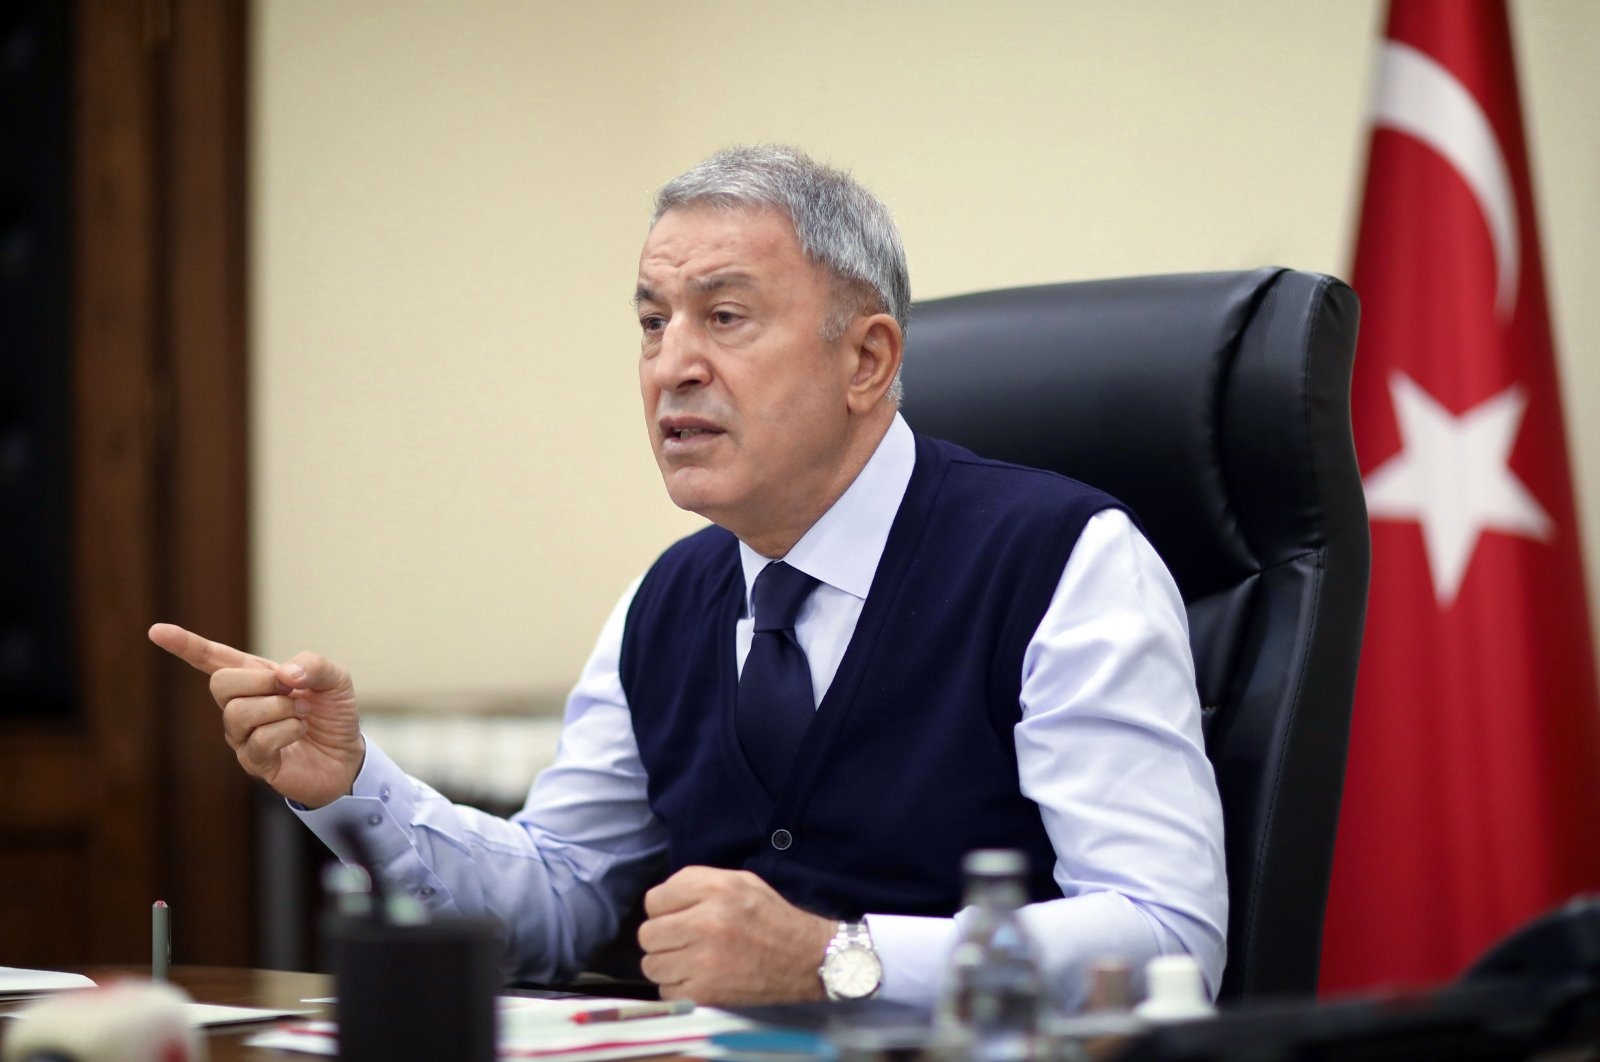 National Defense Minister Hulusi Akar speaks as he chairs a teleconference call meeting in the capital Ankara, Oct. 5, 2020. (AFP)